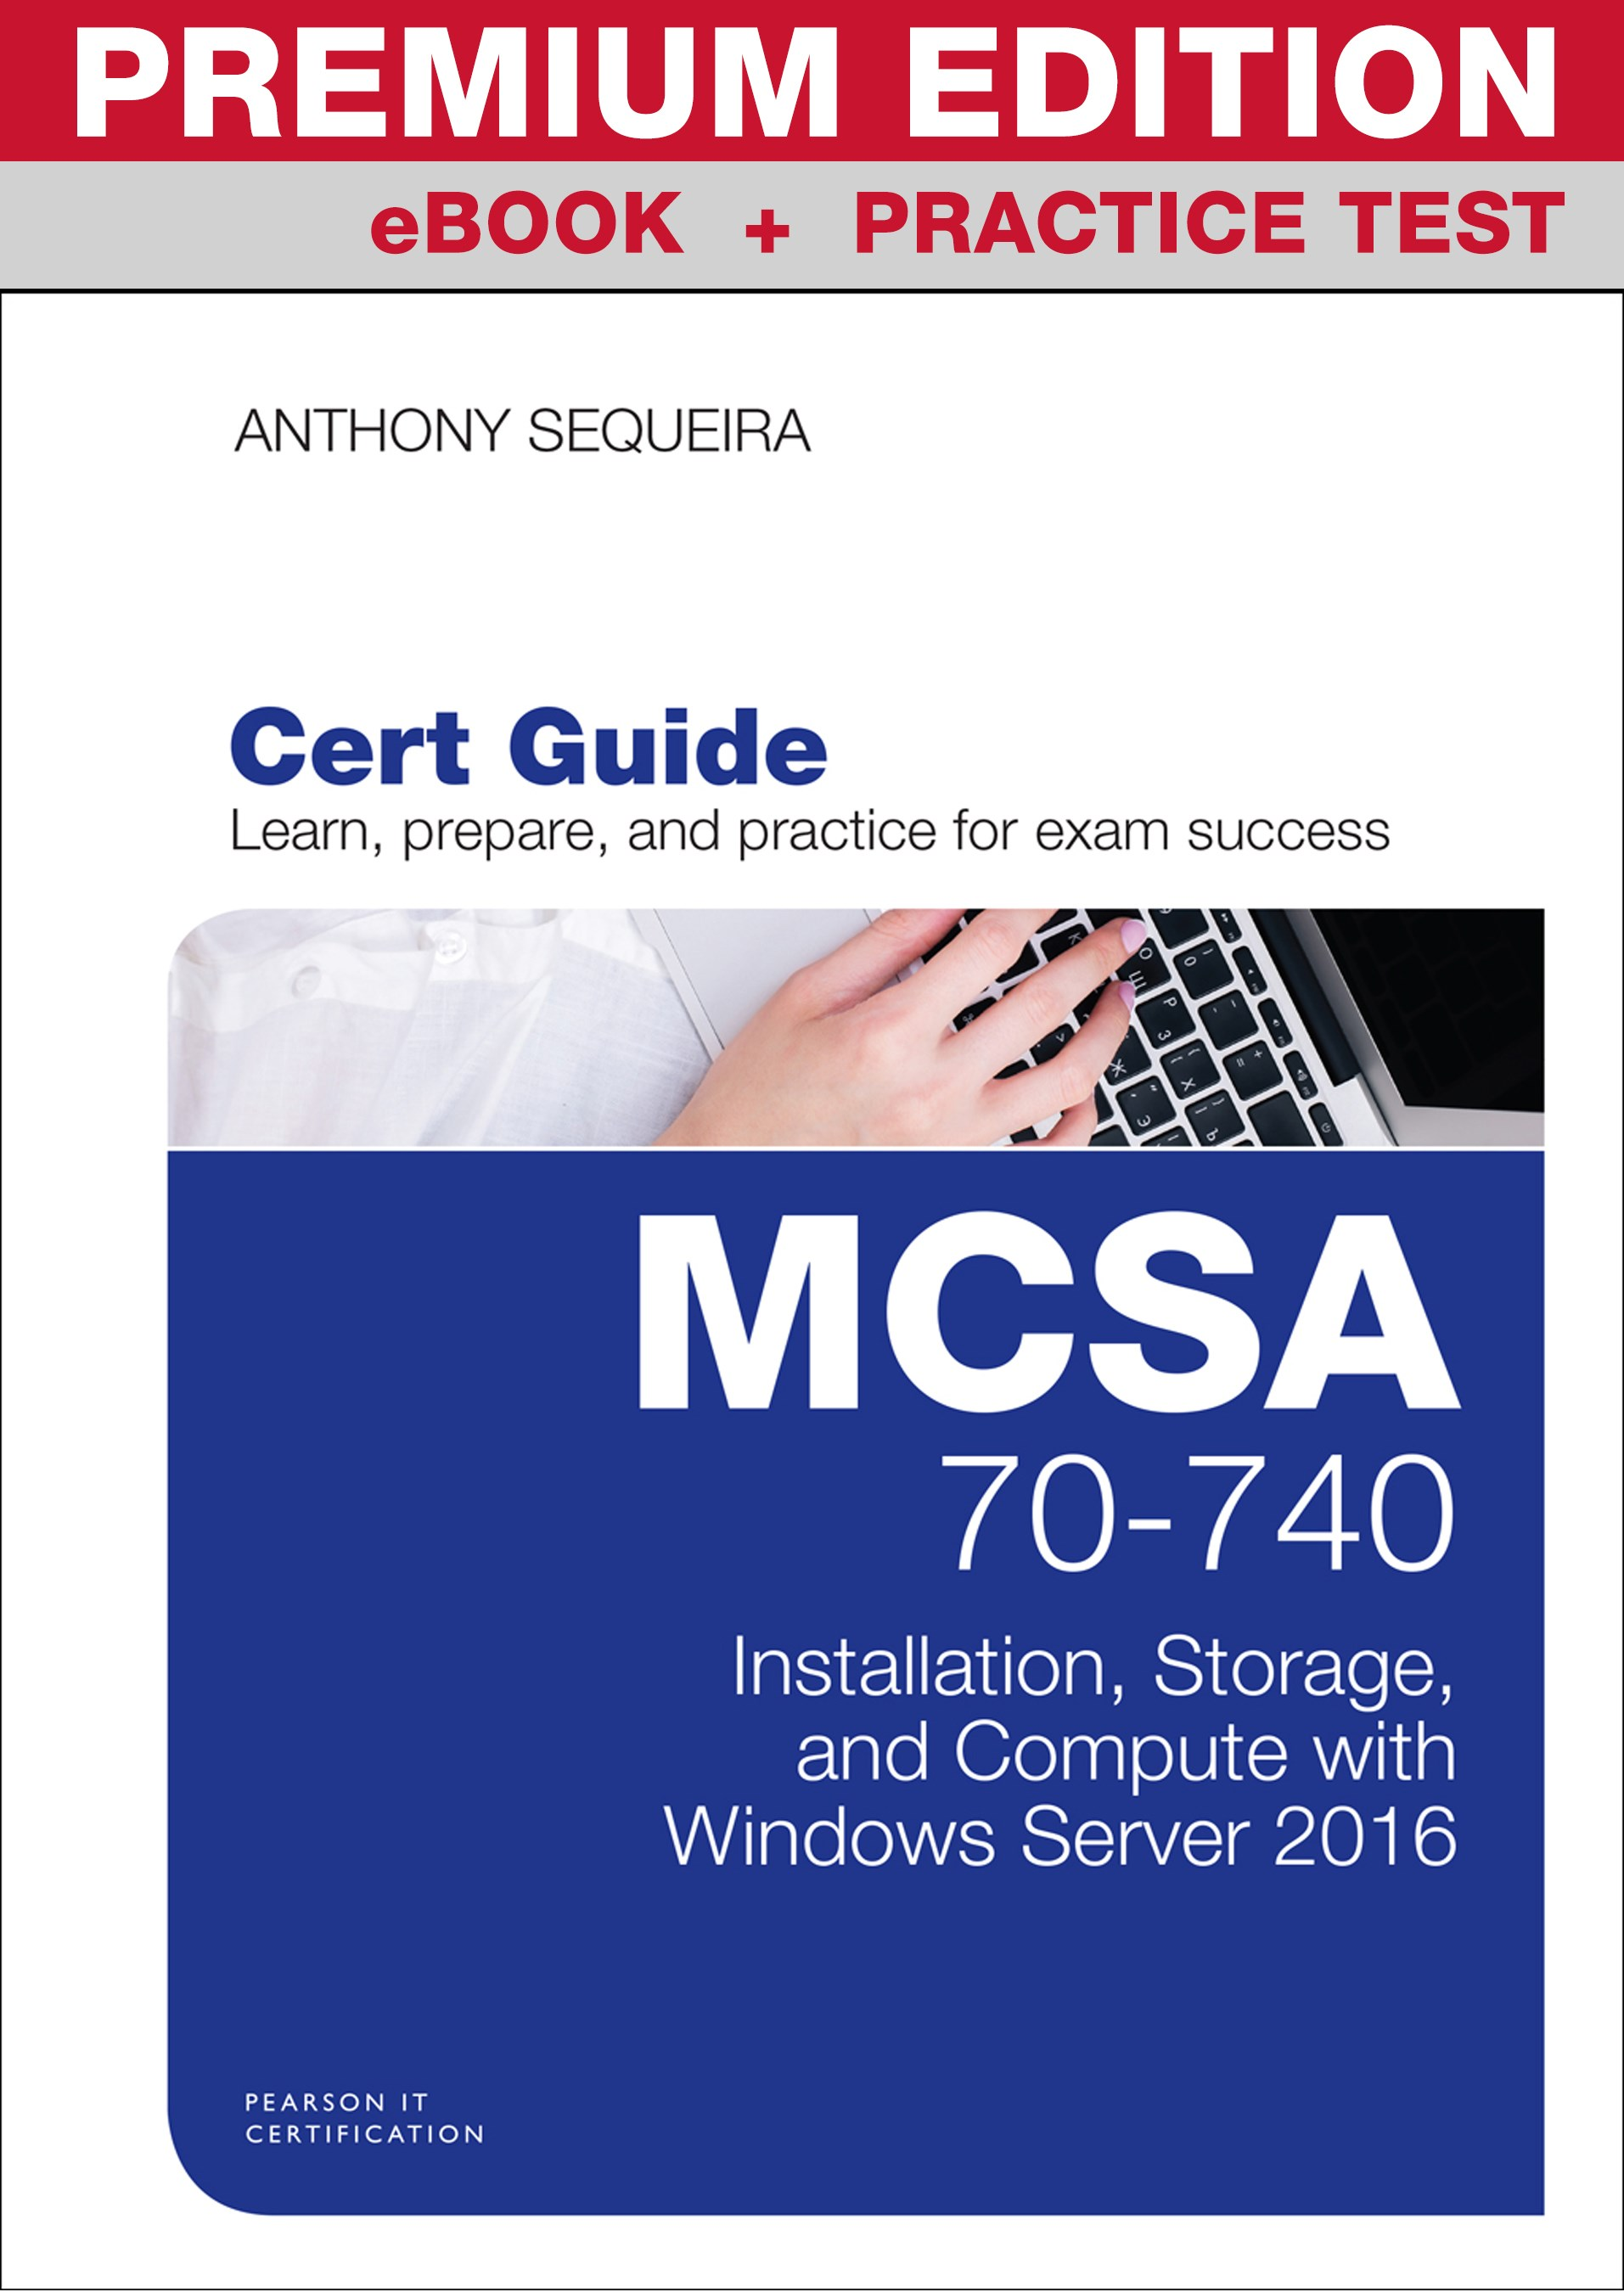 MCSA 70-740 Cert Guide Premium Edition and Practice Tests: Installation, Storage, and Compute with Windows Server 2016